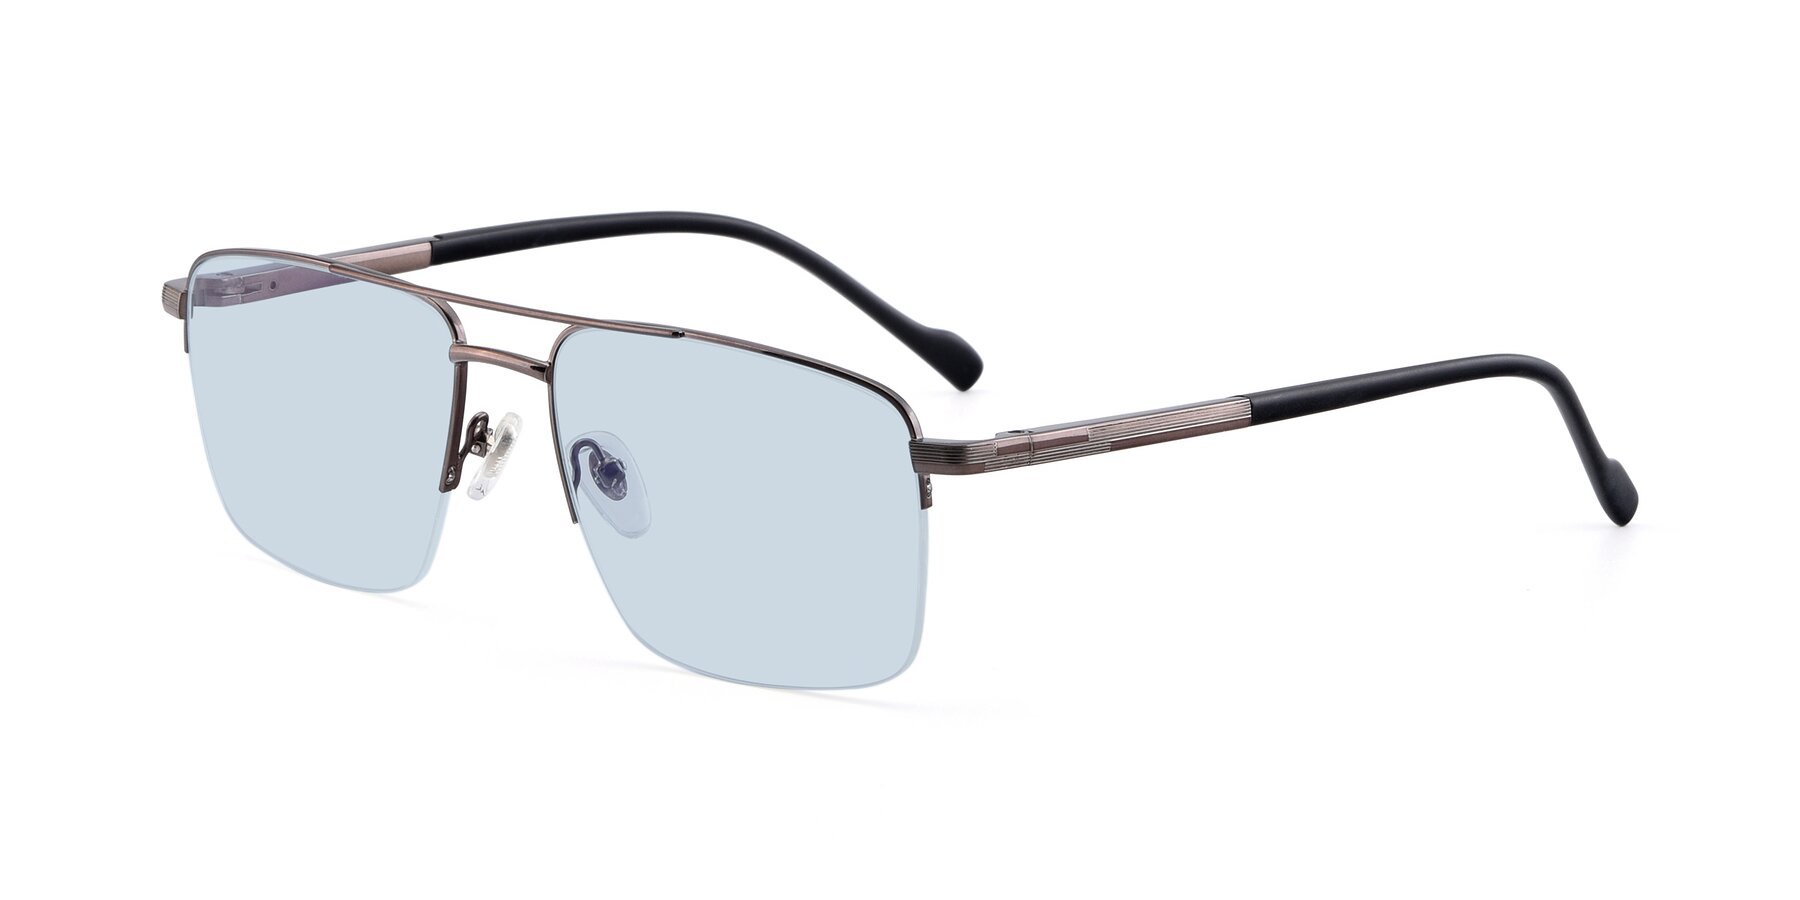 Angle of 19013 in Gunmetal with Light Blue Tinted Lenses